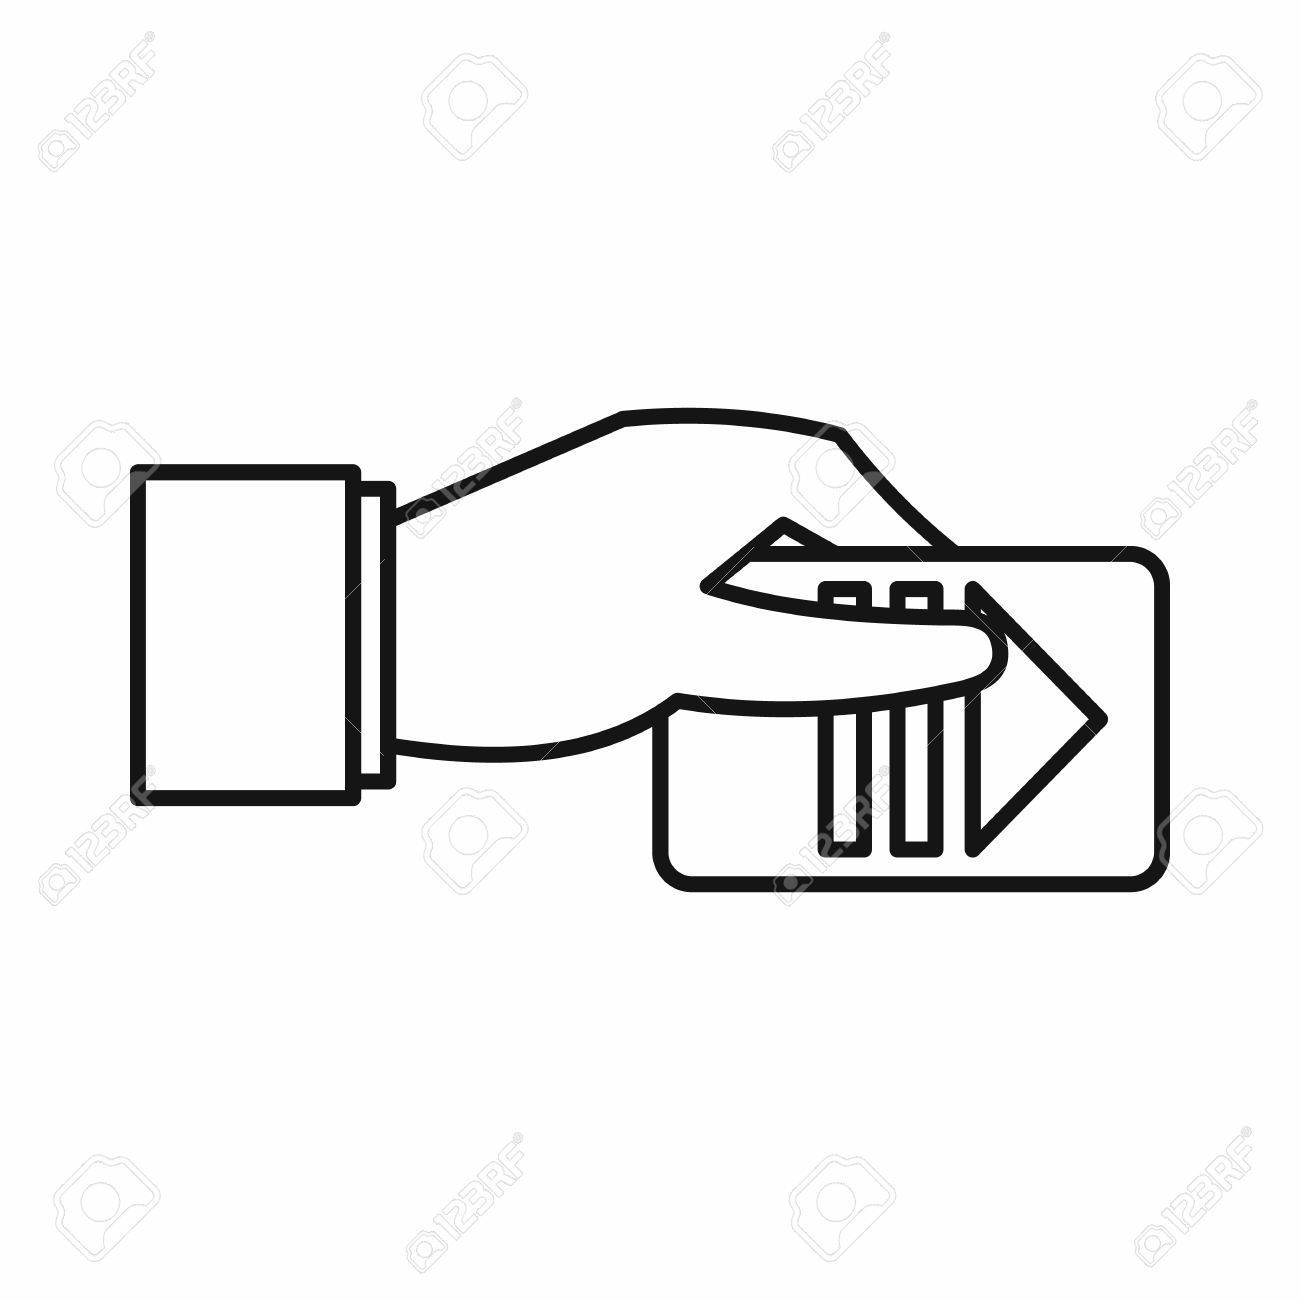 hand parking ticket icon in outline style isolated on white hand parking ticket icon in outline style isolated on white background stock vector 58818914